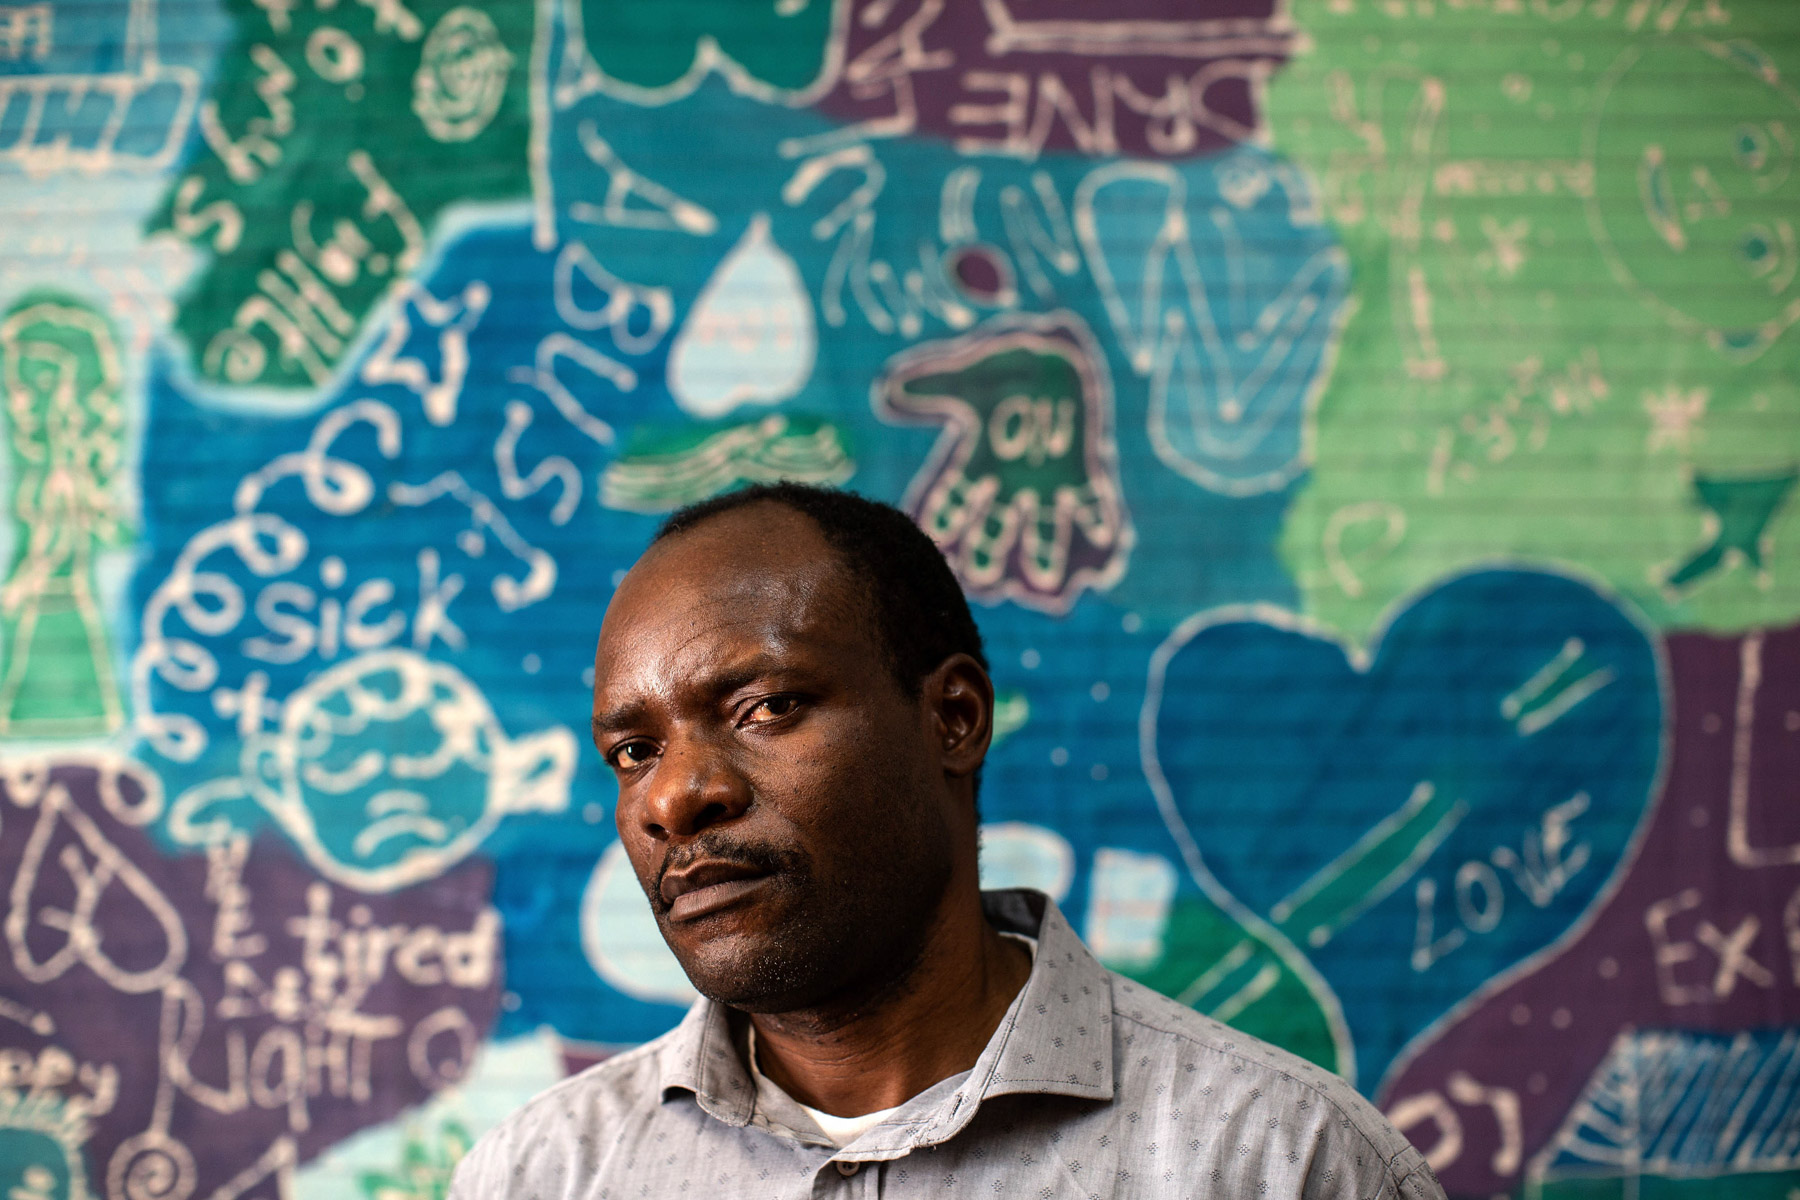 22 May 2020: Congolese migrant Paulin Chikomba works as a counsellor at the Sophiatown Community Psychosocial Services in Bertrams.